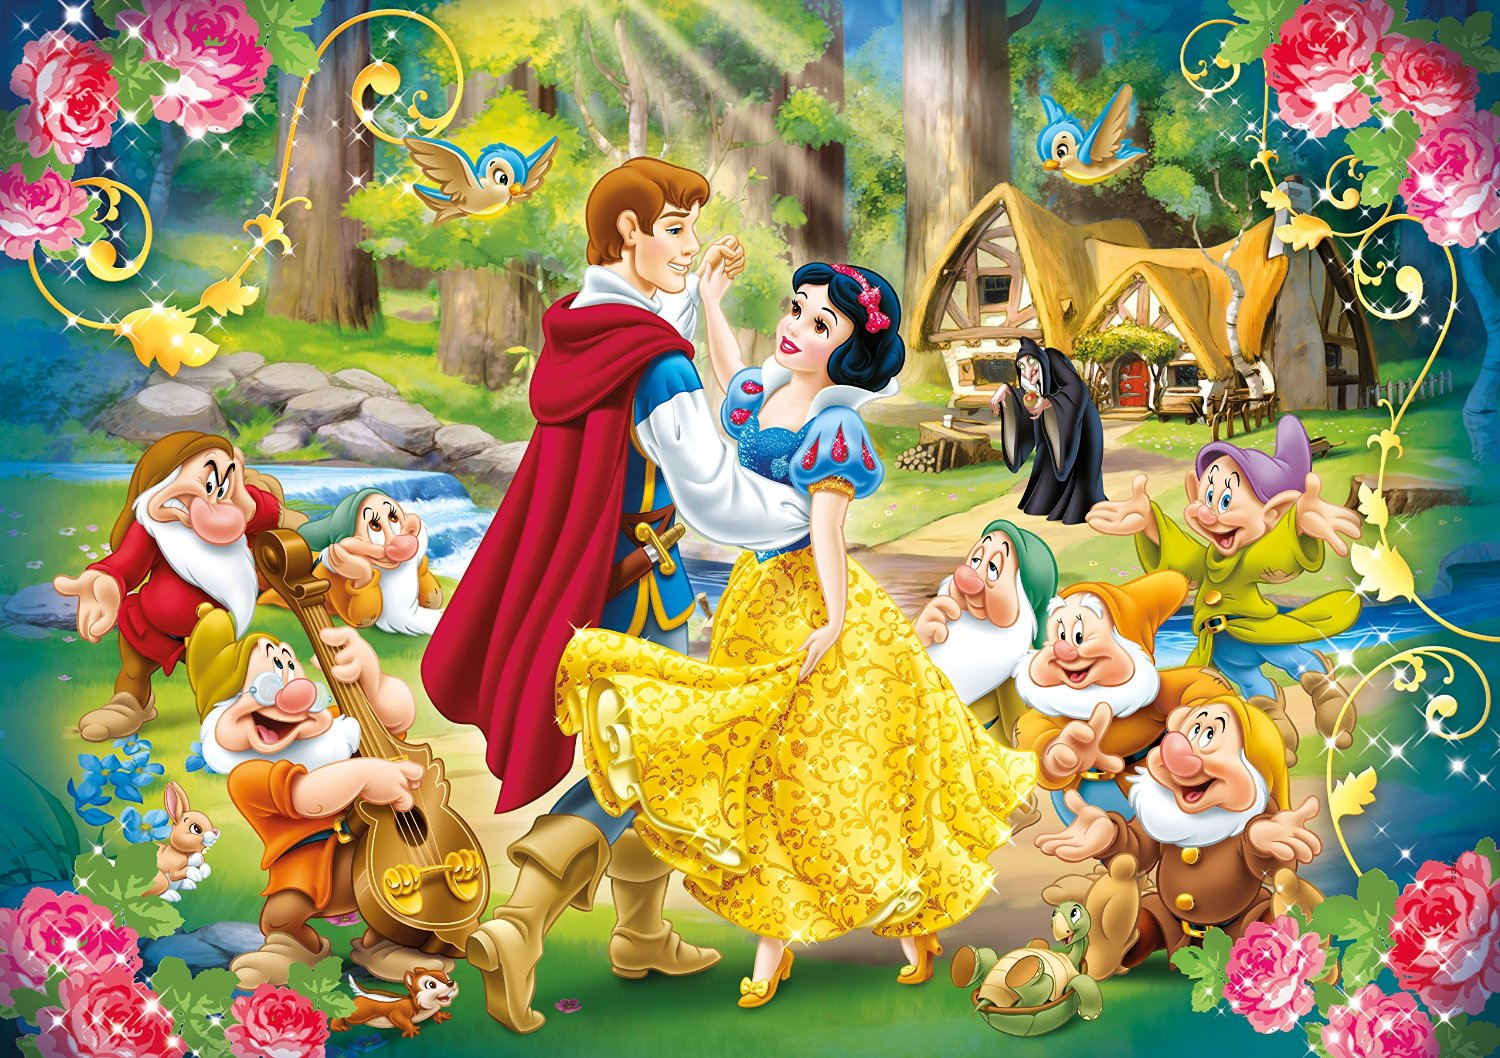 puzzle xxl blanche neige clementoni 24469 24 pi ces puzzles amour et tendresse planet 39 puzzles. Black Bedroom Furniture Sets. Home Design Ideas